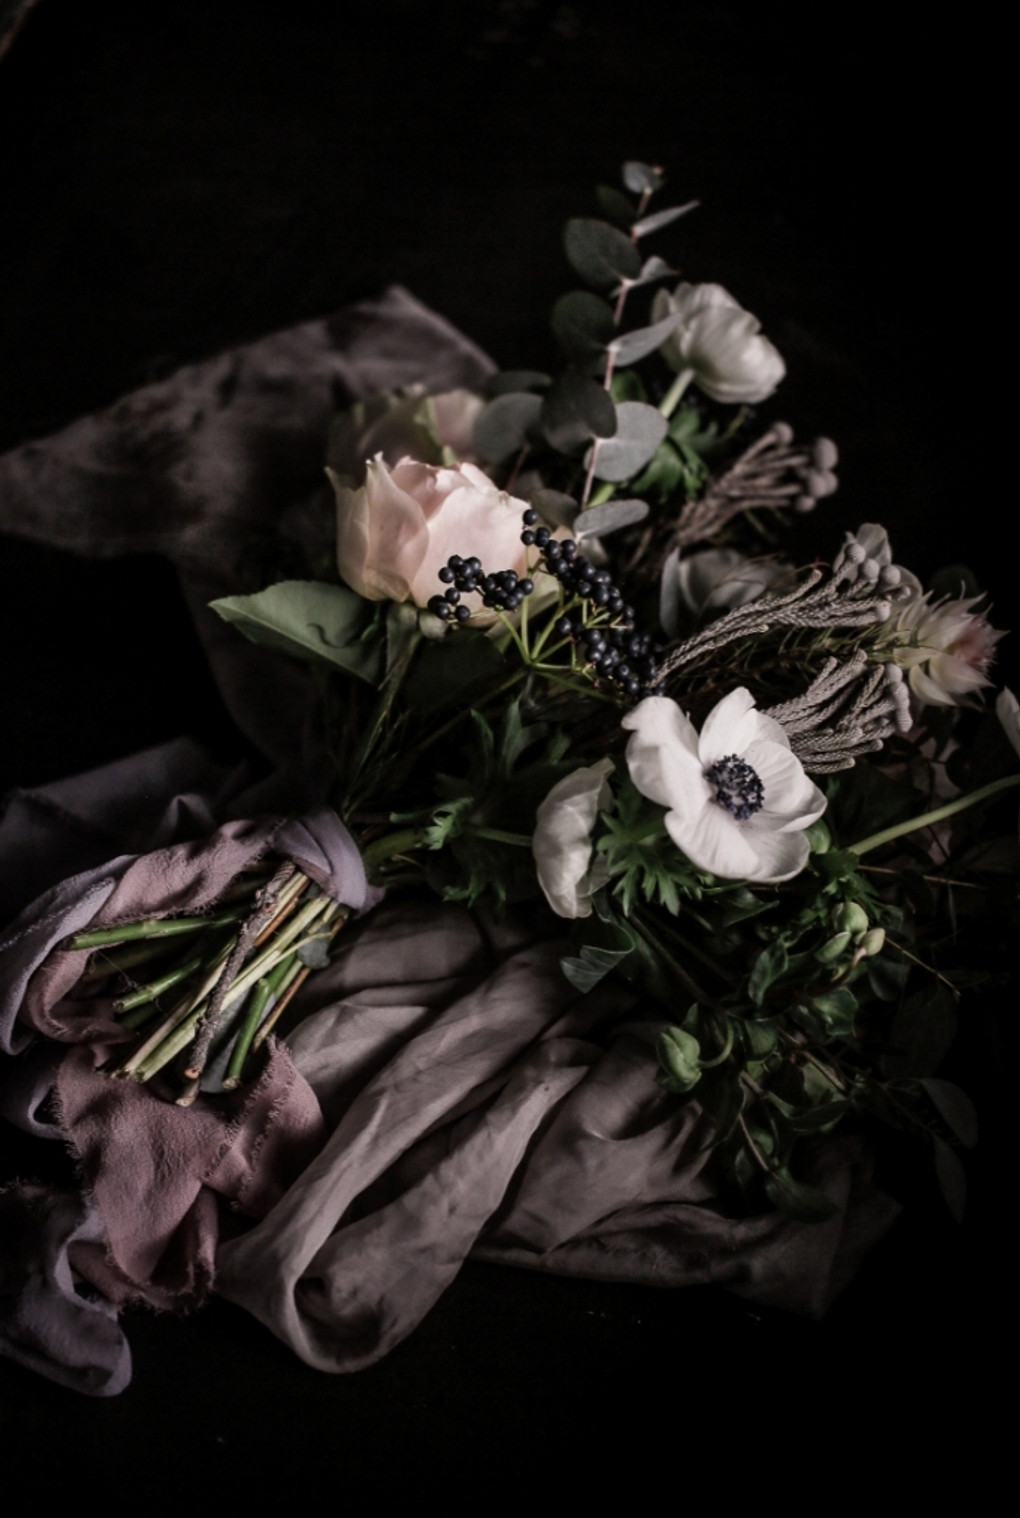 A Vintage Wedding With A Gothic Touch In Tagaytay Philippines